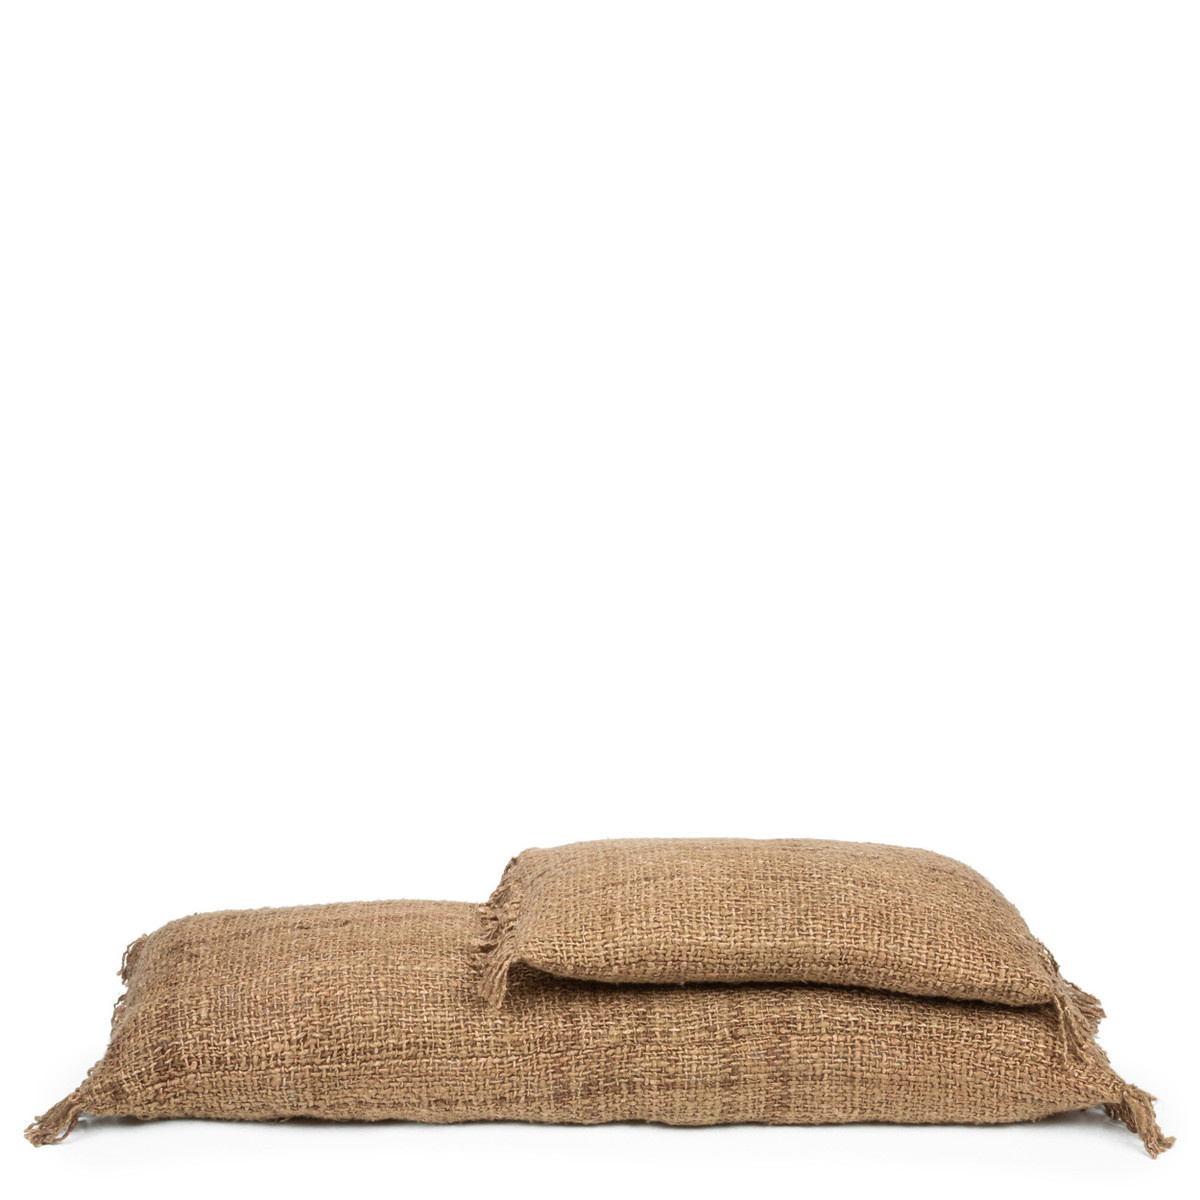 Petite Lily Interiors Cushion Boho - Brown / Natural - L100xW35cm